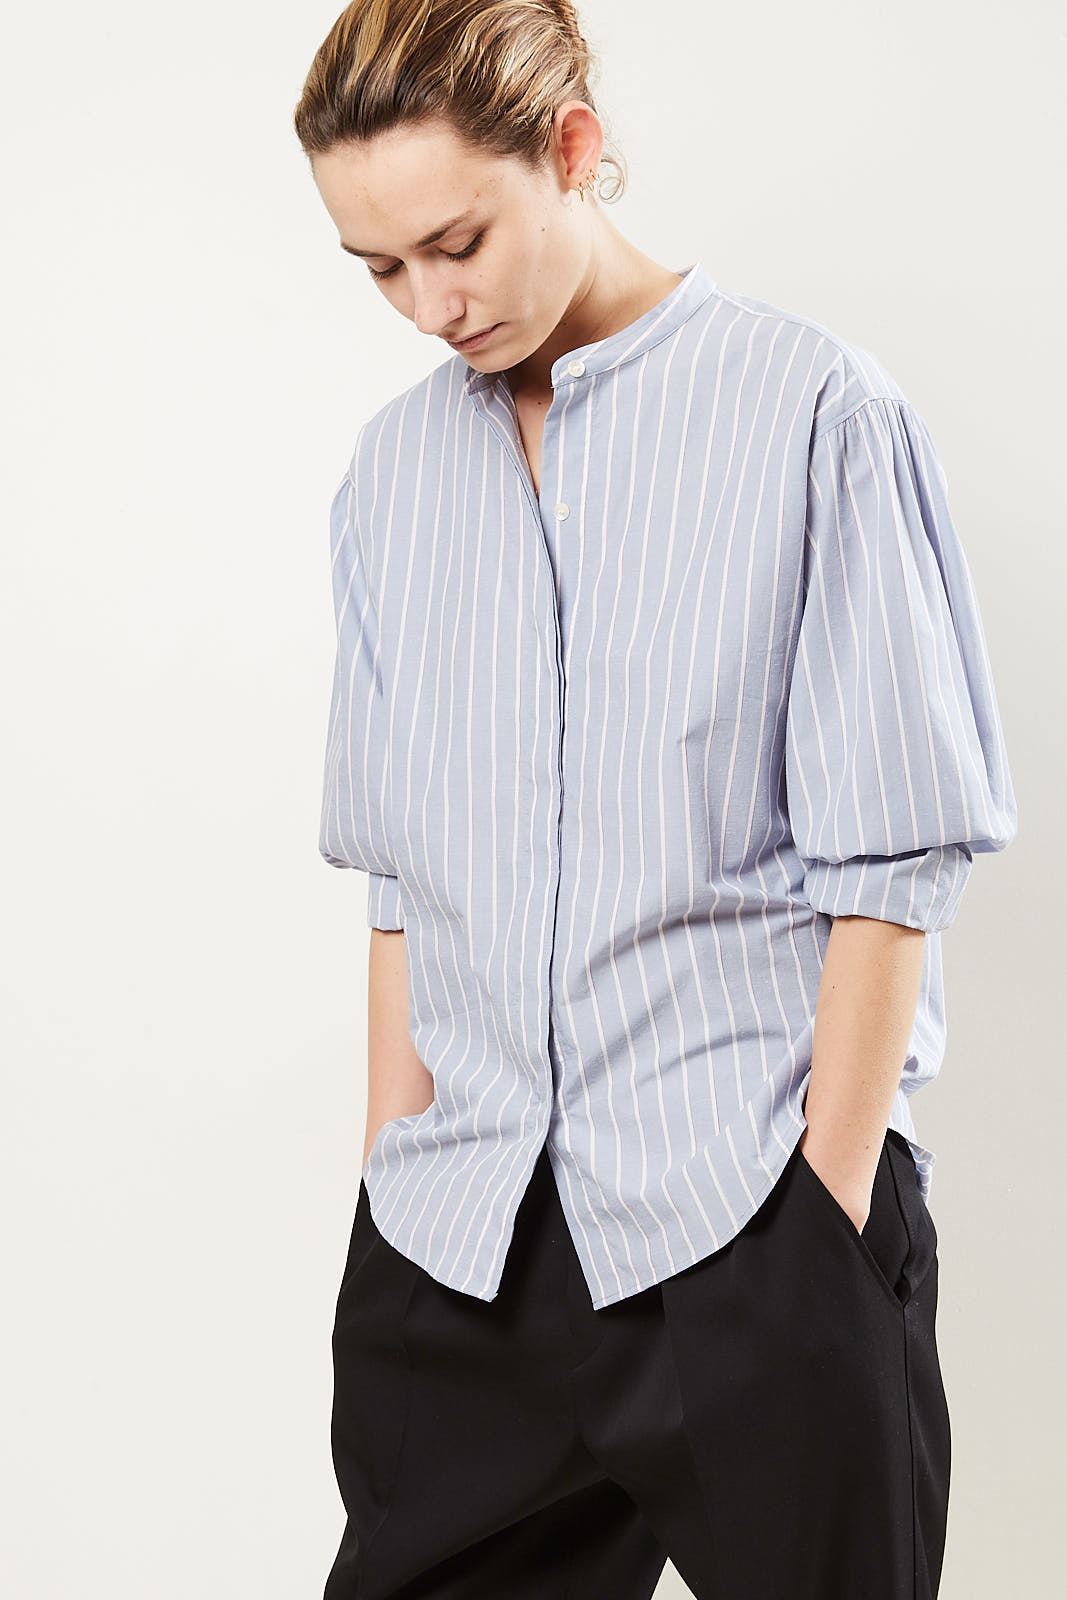 Isabel Marant - Satchell striped band collar shirt